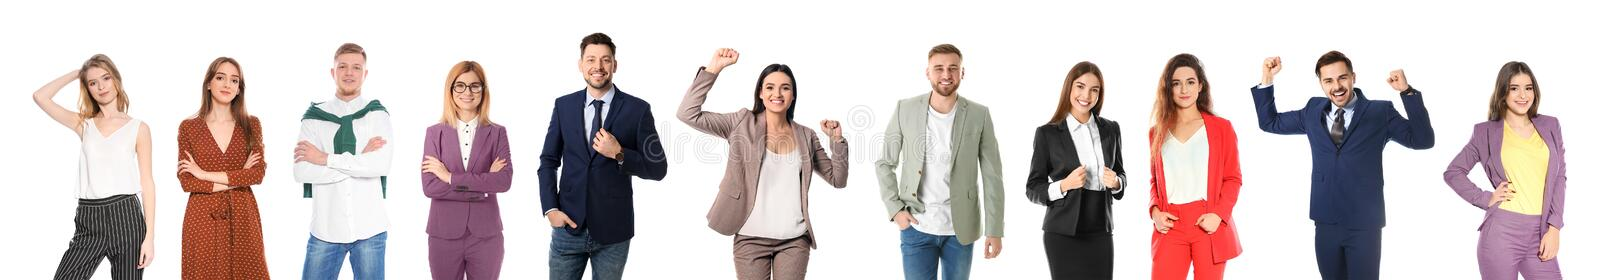 Collage of attractive people on white background royalty free stock image